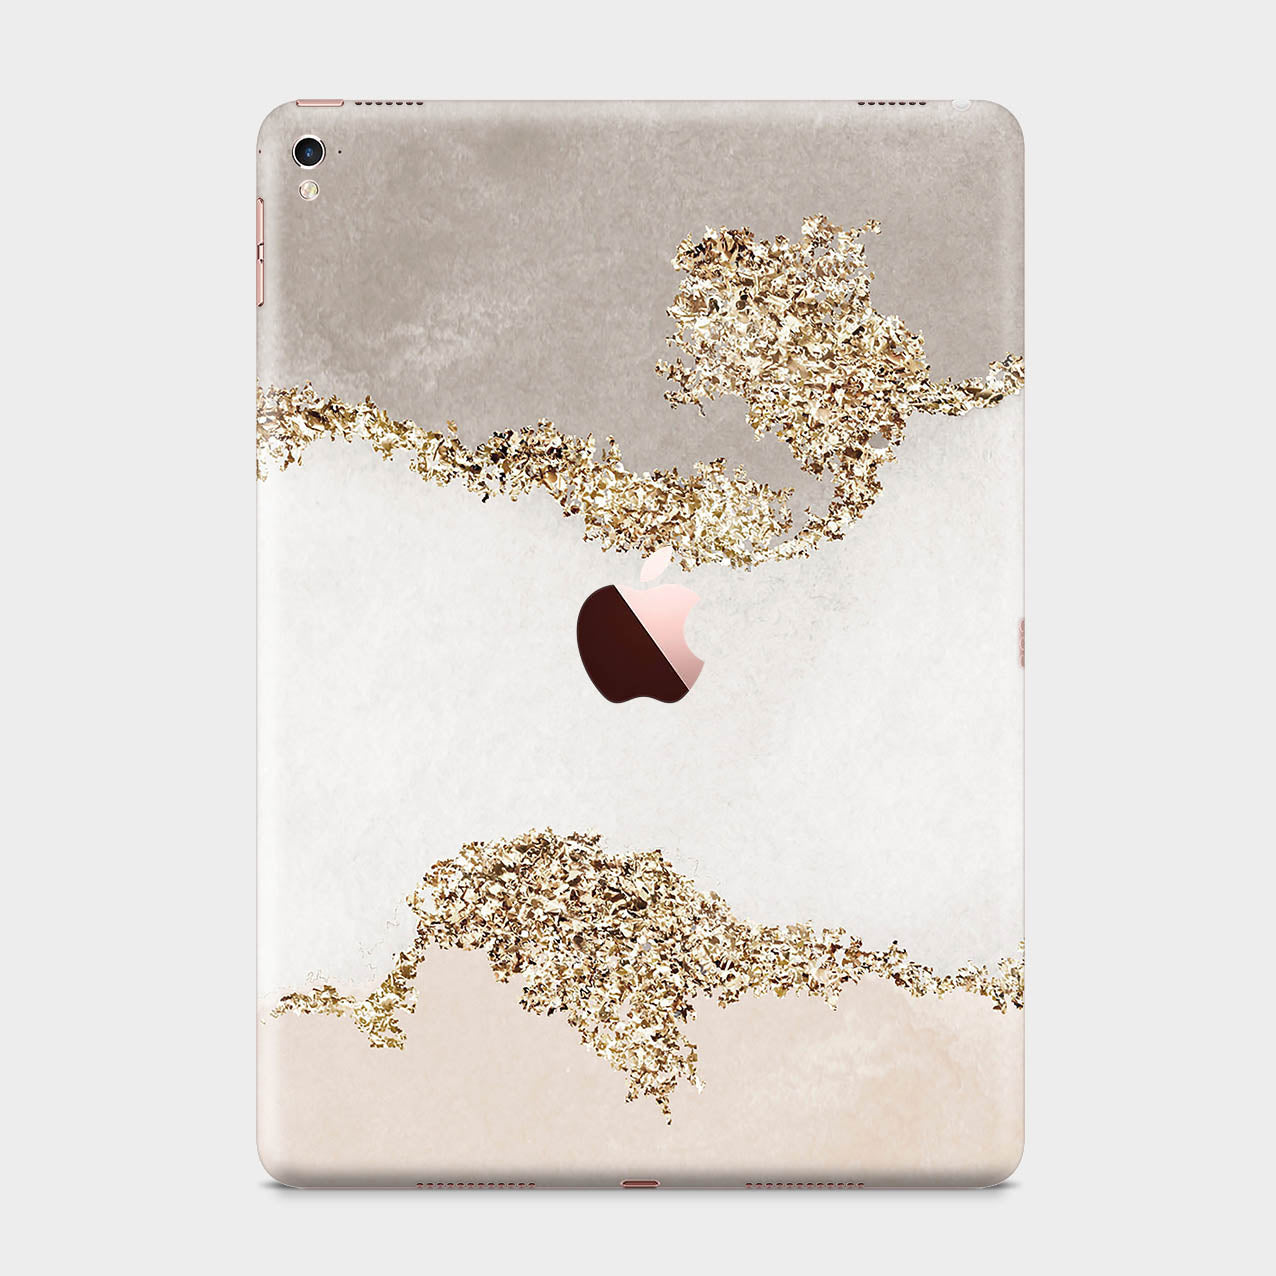 GOLDEN COAST iPad Mini 2 skins | Pigtou